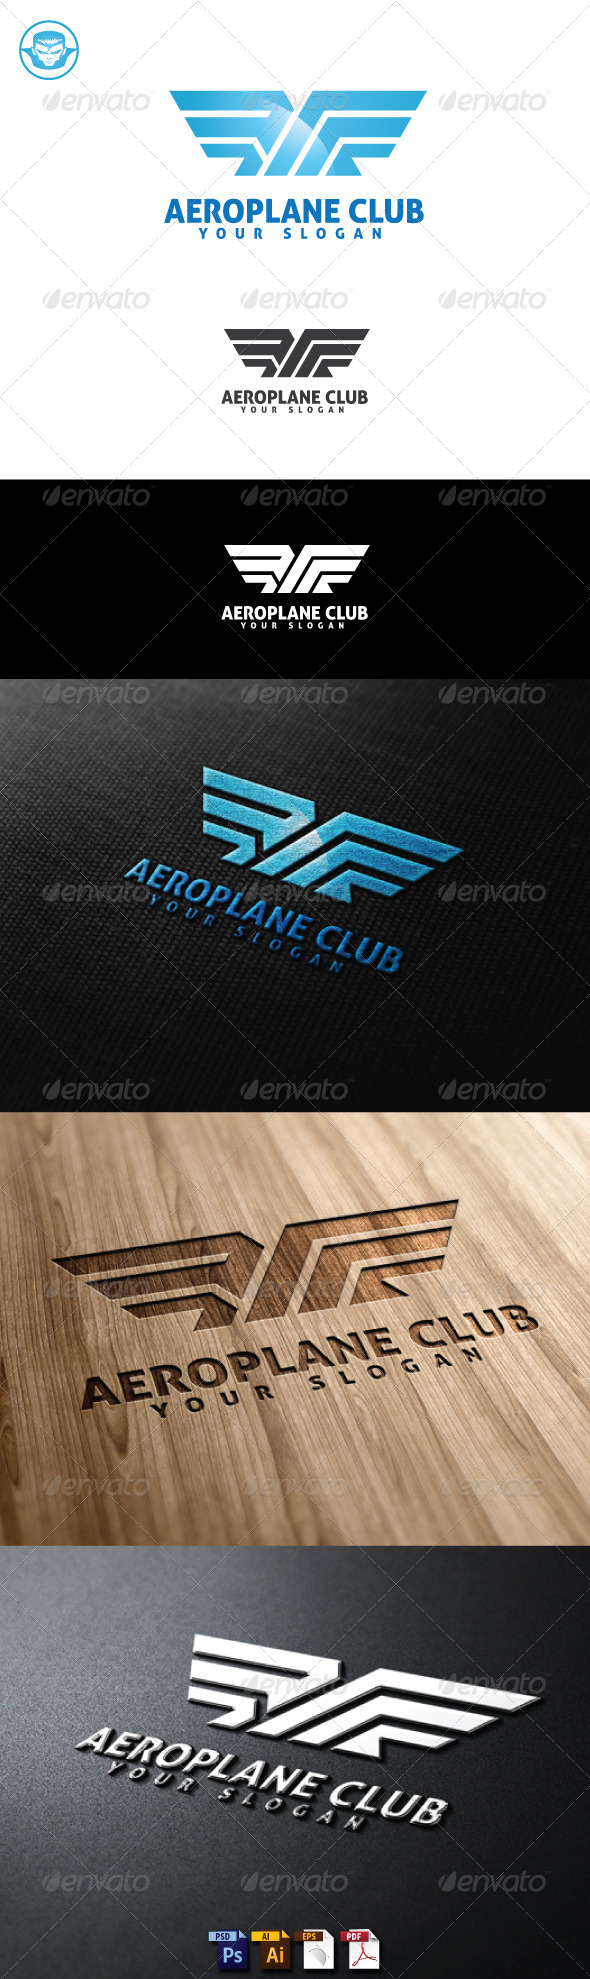 GraphicRiver Aeroplane Club Logo Template 5161530